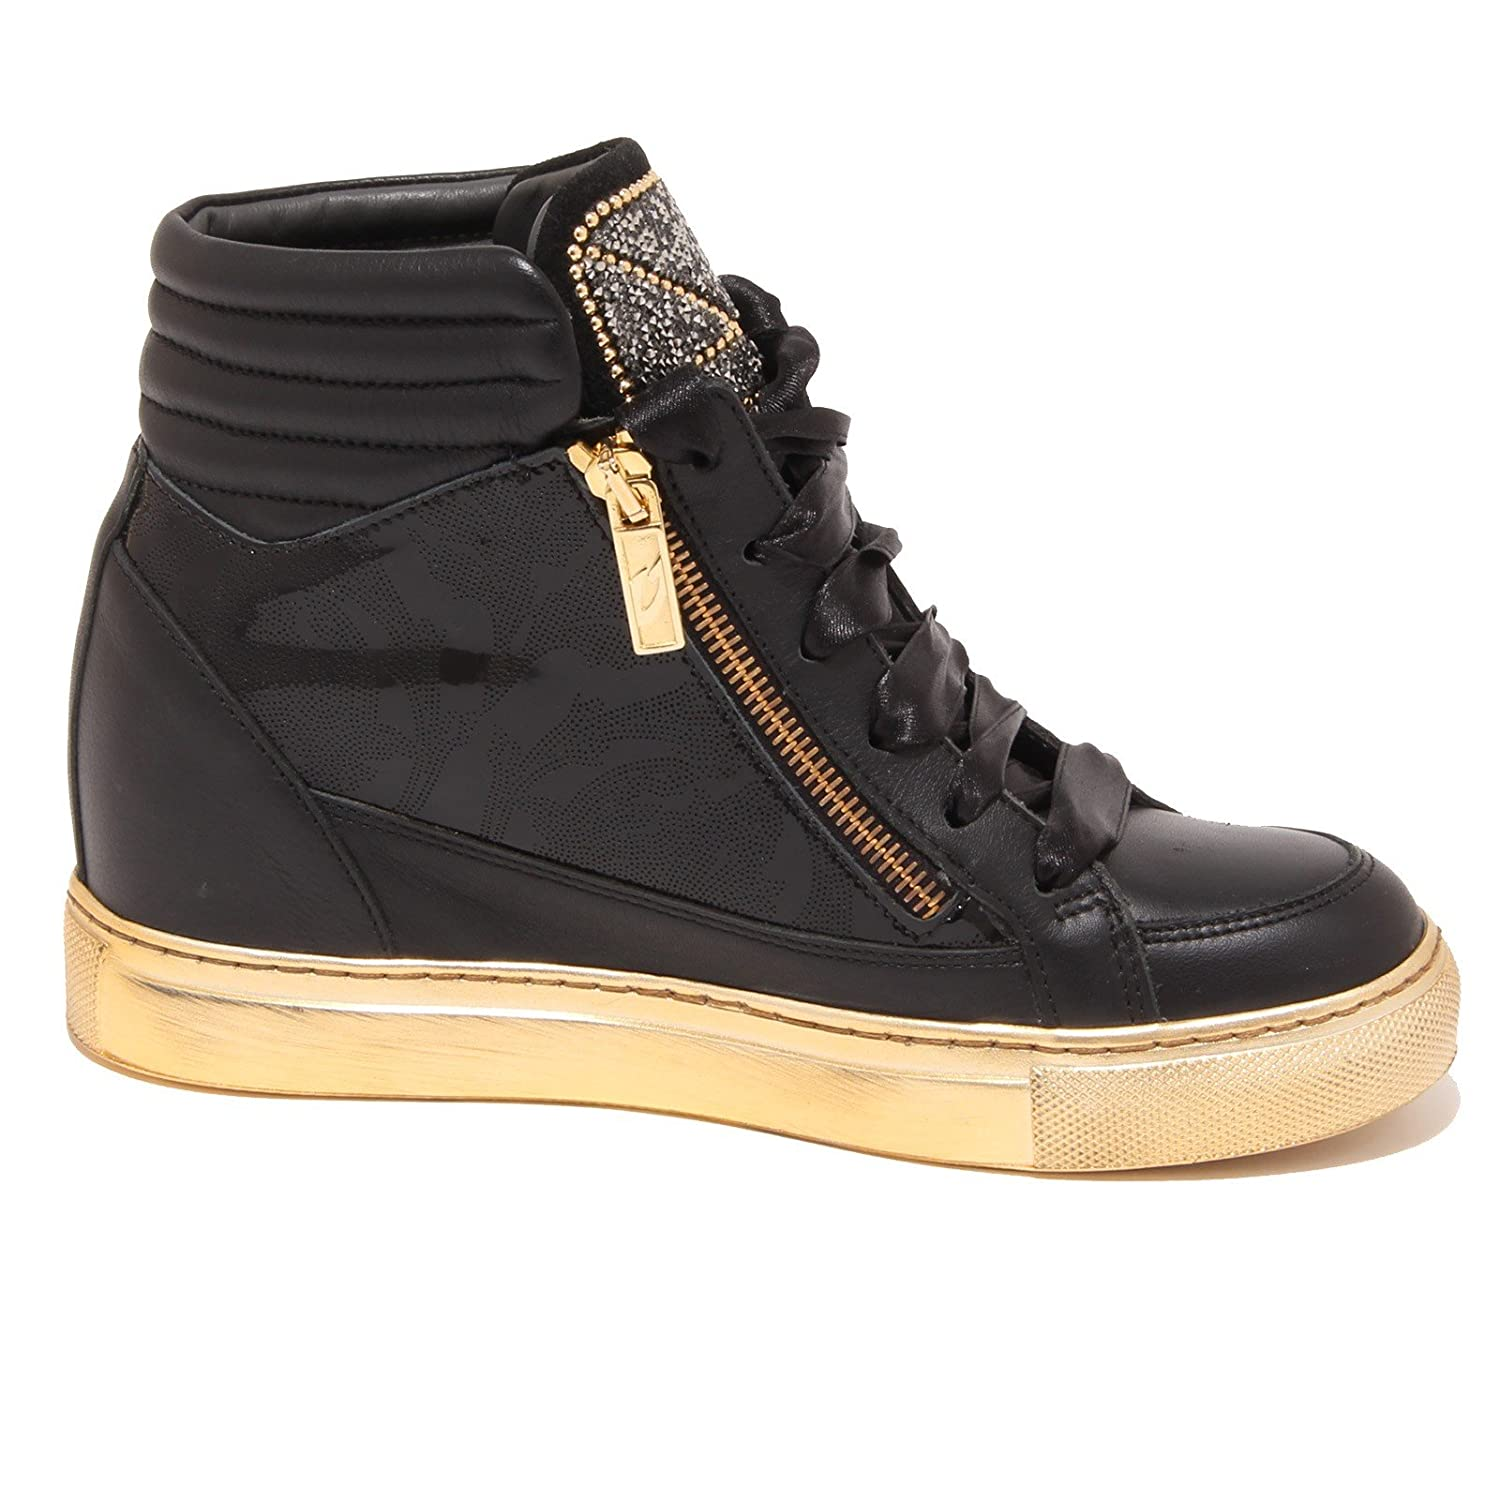 0853P Scarpa Donna GUARDIANI Sport Empire Nero Strass Shoe Woman   Amazon.fr  Chaussures et Sacs 9eba04fa96f